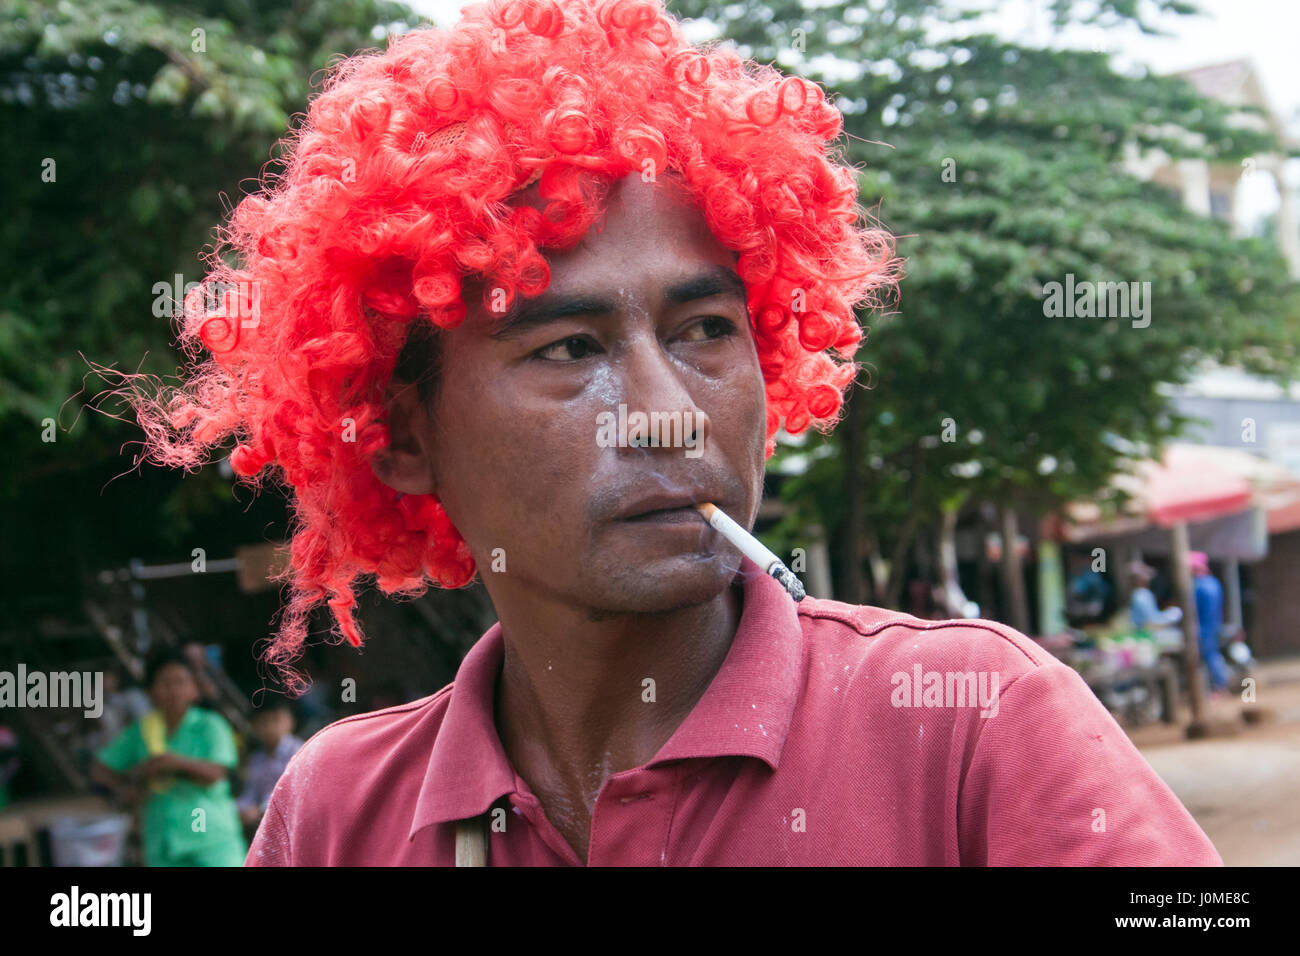 A Cambodian man is smoking a cigarette while wearing a red wig as he celebraties Khmer New Year in Chork Village, Stock Photo